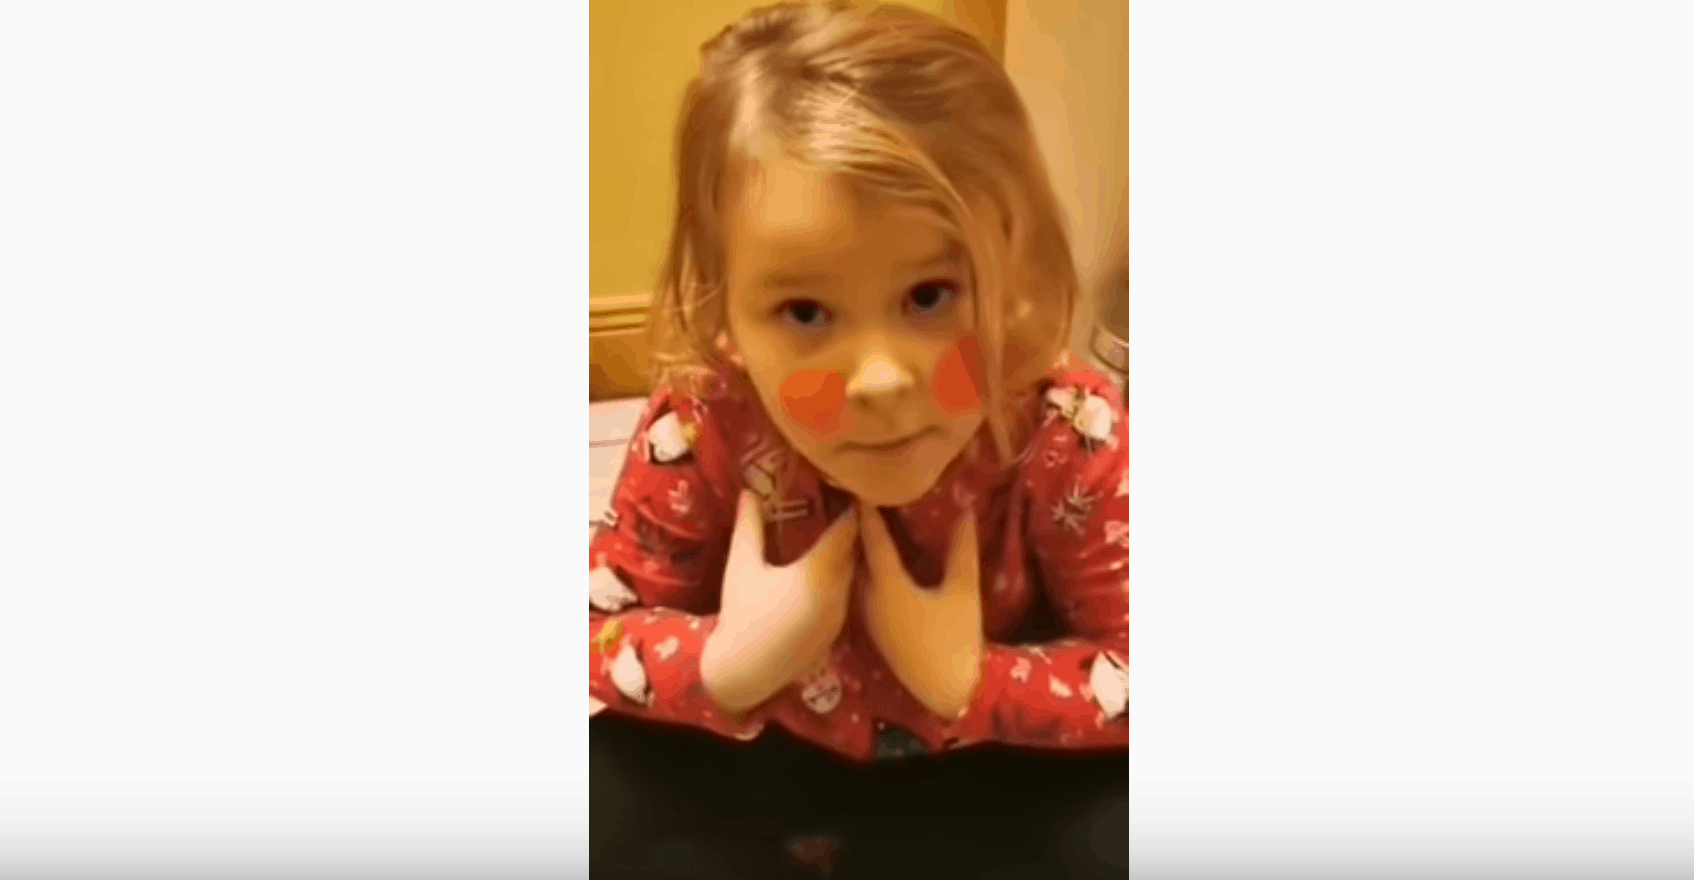 6 year old Irish girl hilariously insists on going to the pub 😂😂